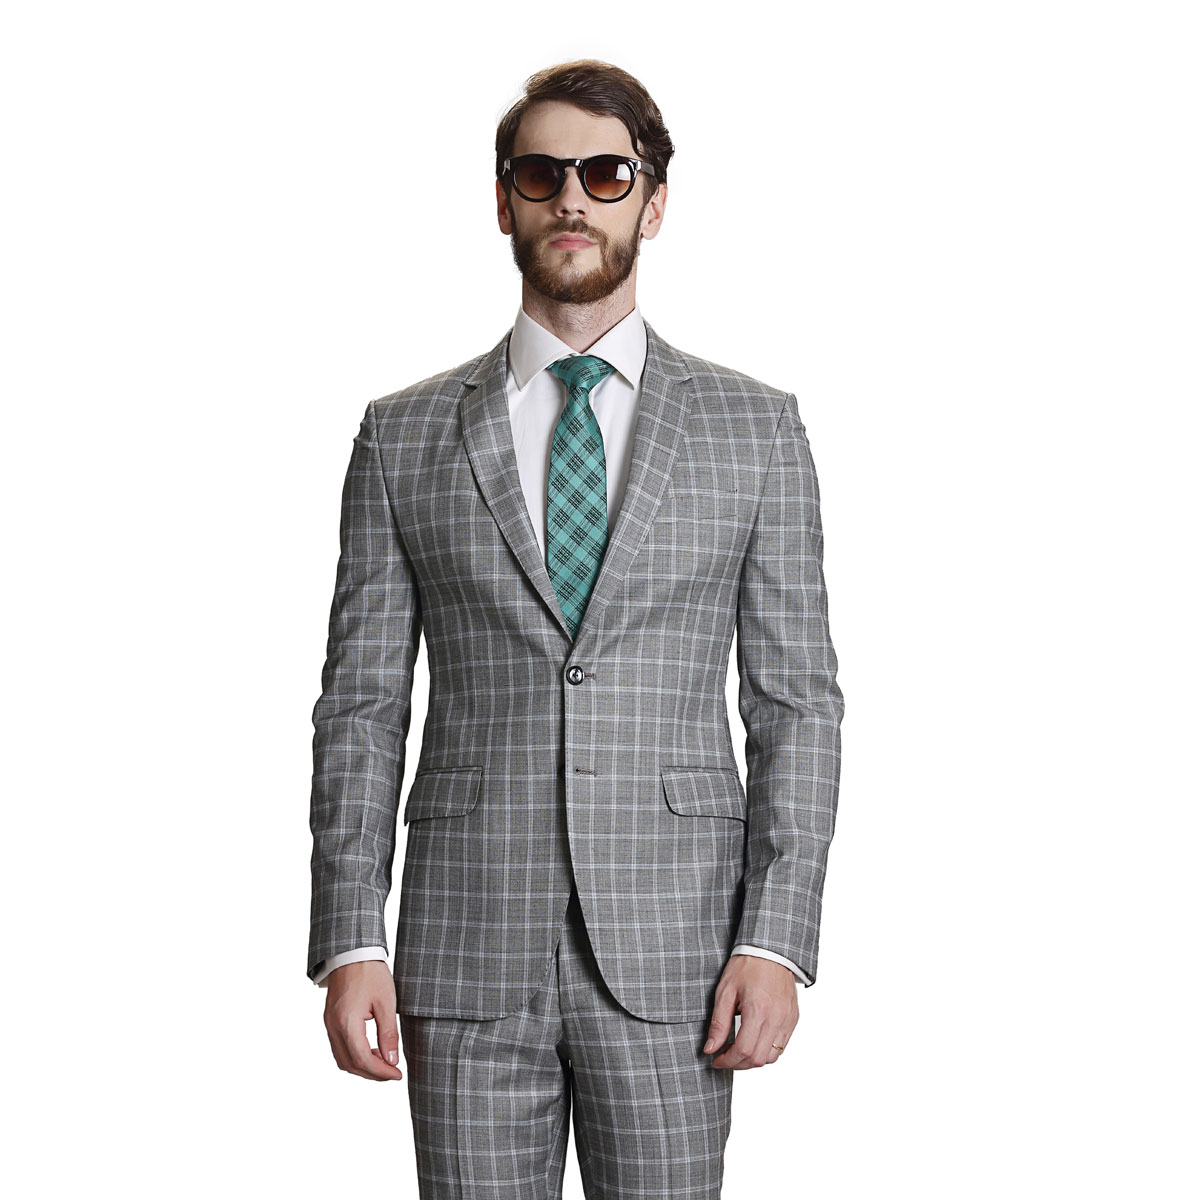 FEEL GOOD GREY CHECK SUIT - Best Bespoke Suits. Premium Custom